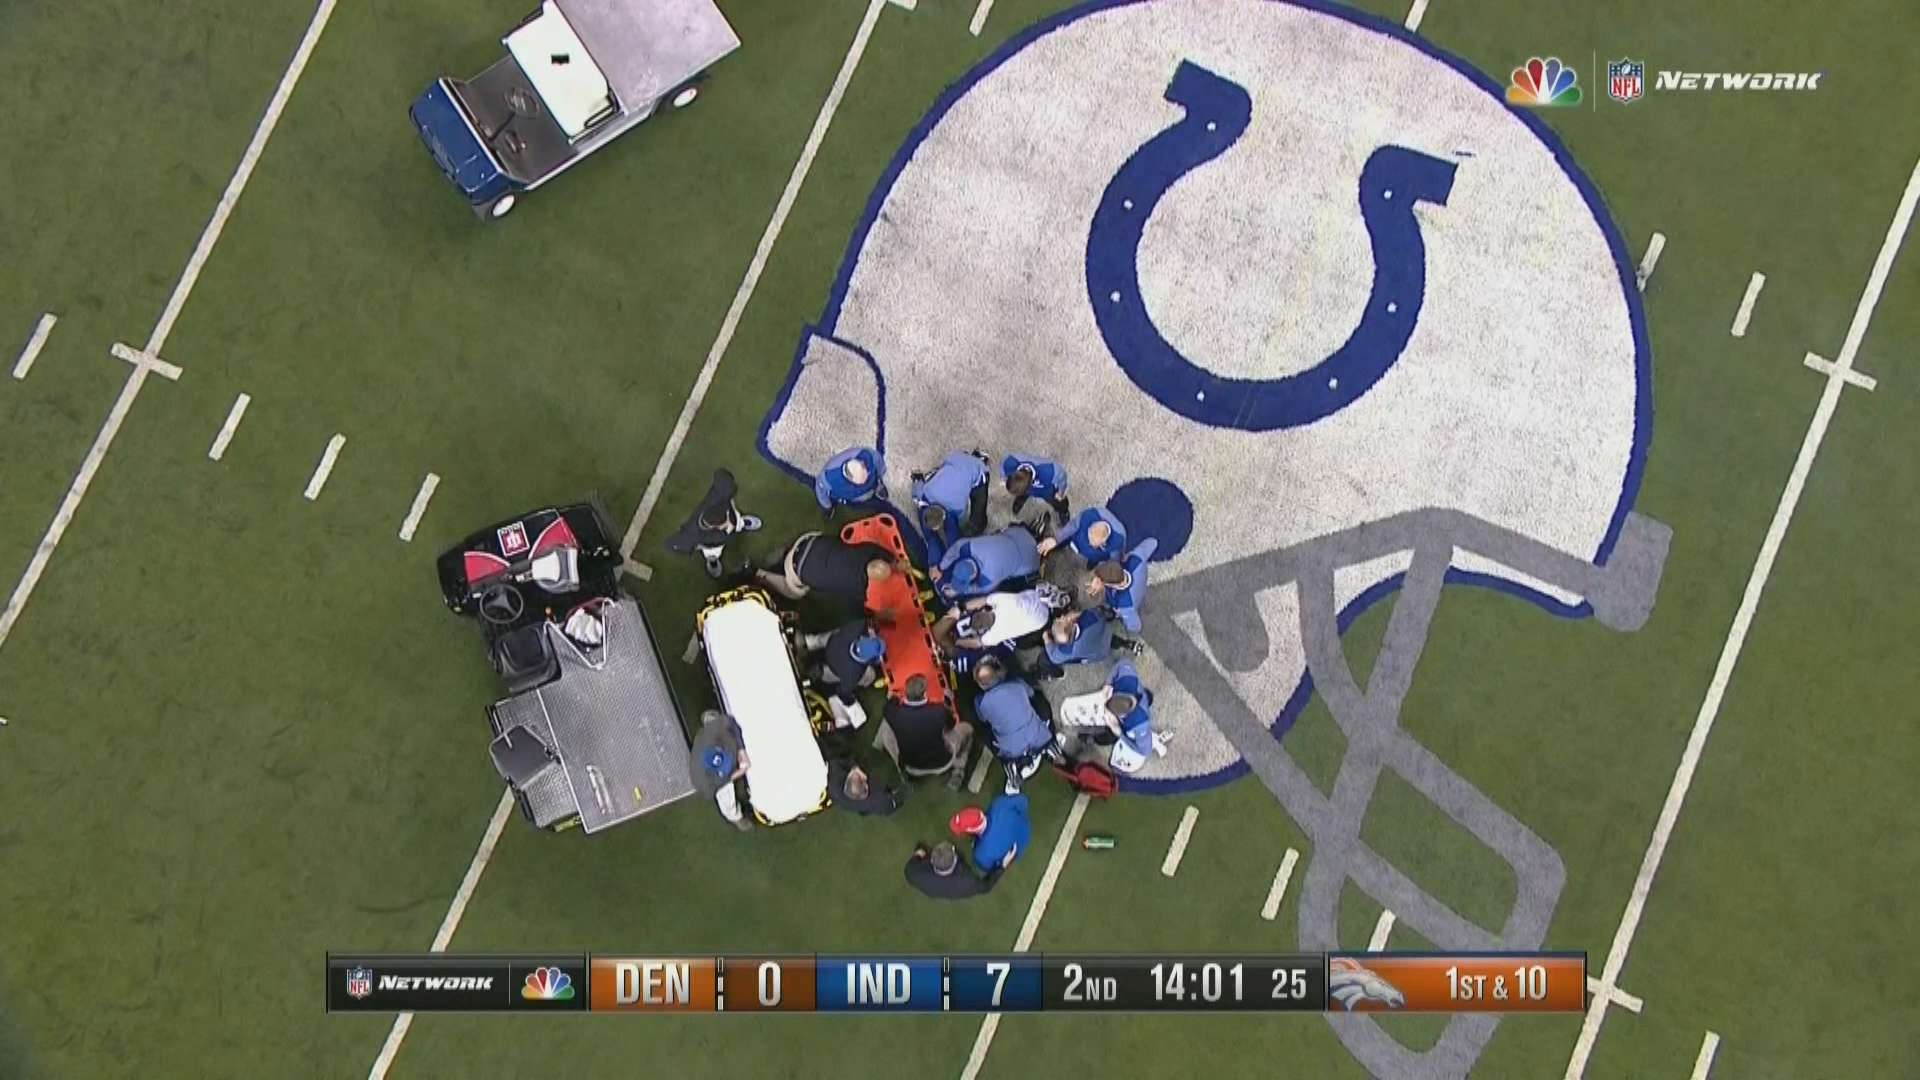 Colts lead Broncos 10-7 at halftime